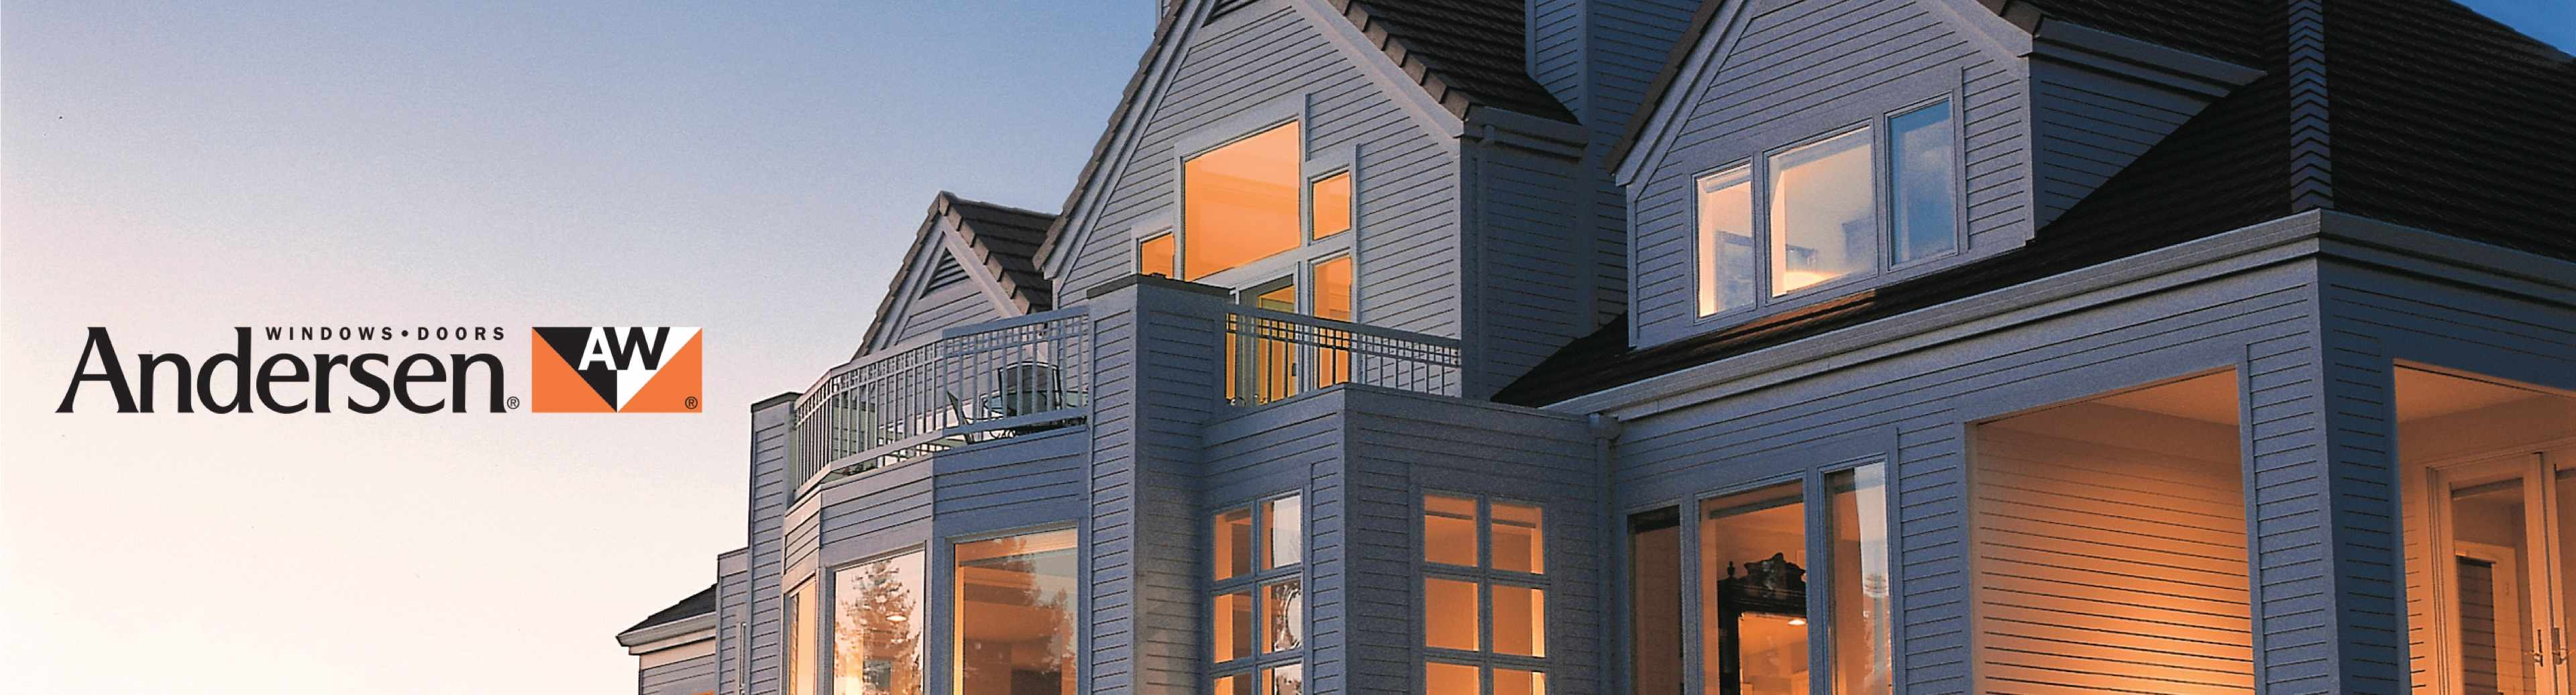 Anderson windows and doors on house at sunset with logo